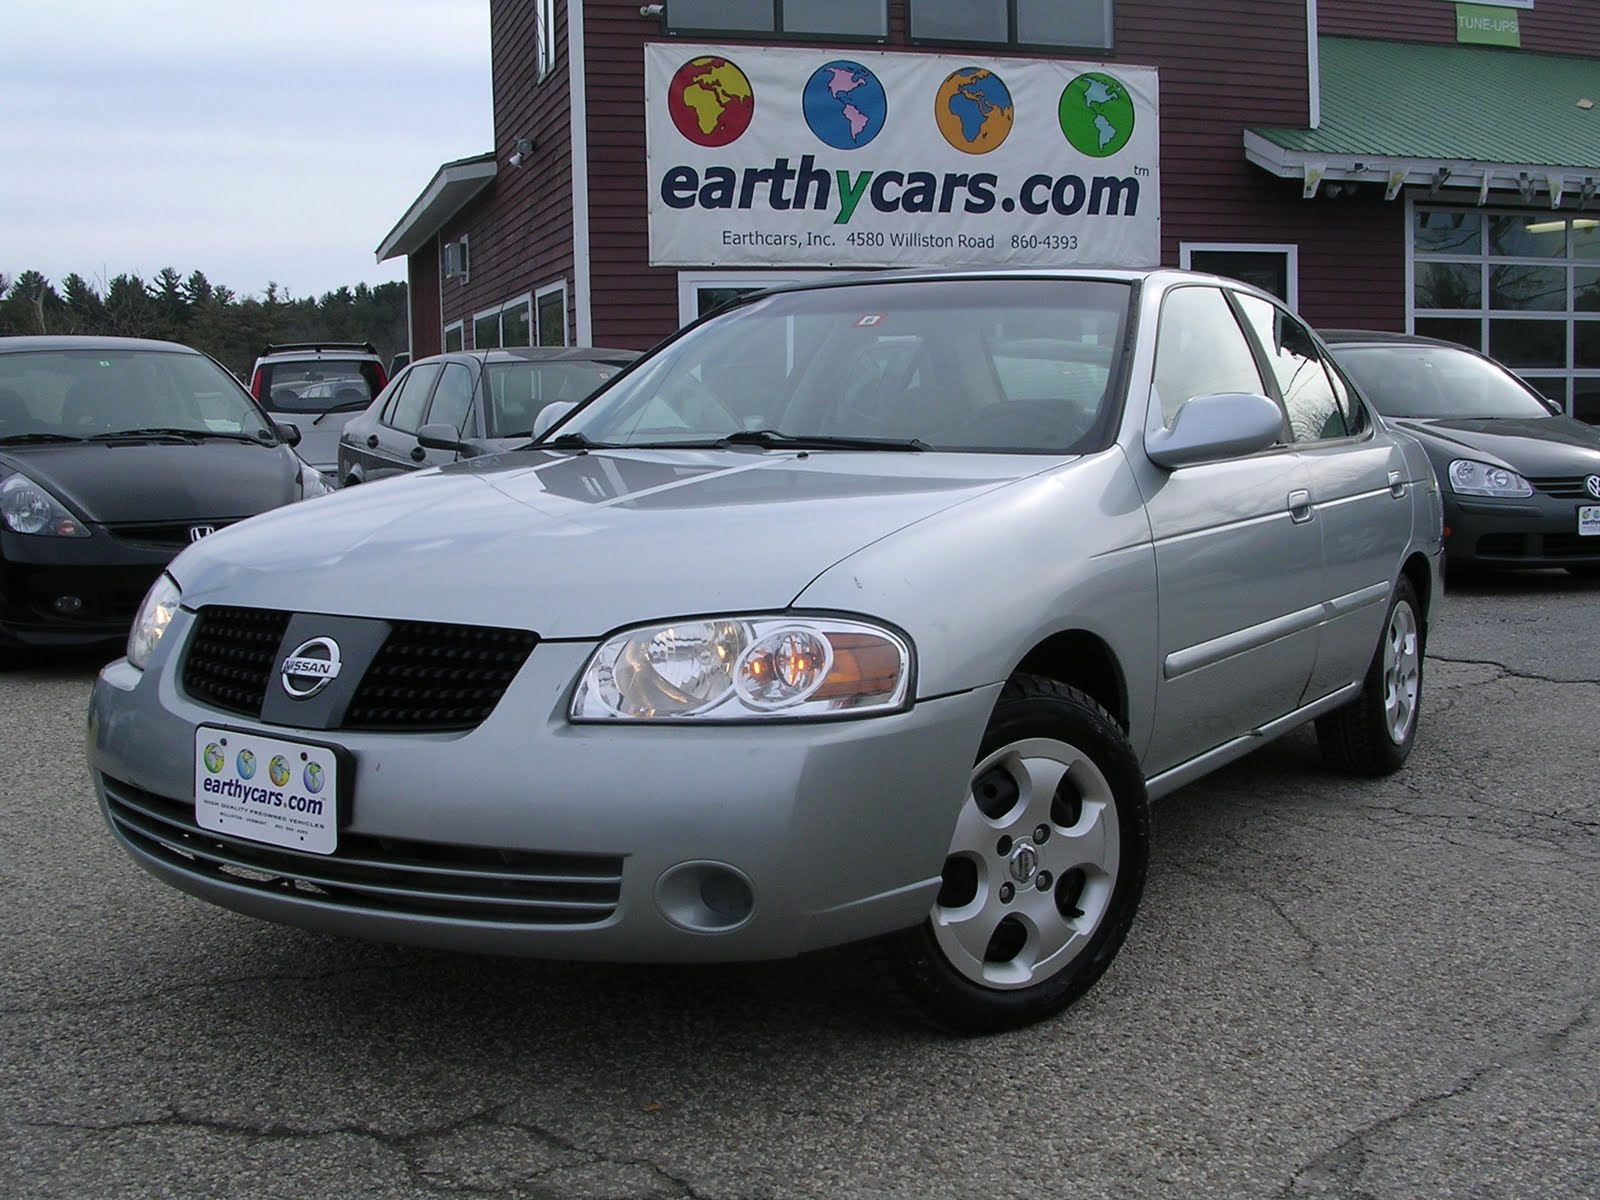 Earthy Cars Blog: EARTHY CAR OF THE WEEK: 2004 Nissan ...